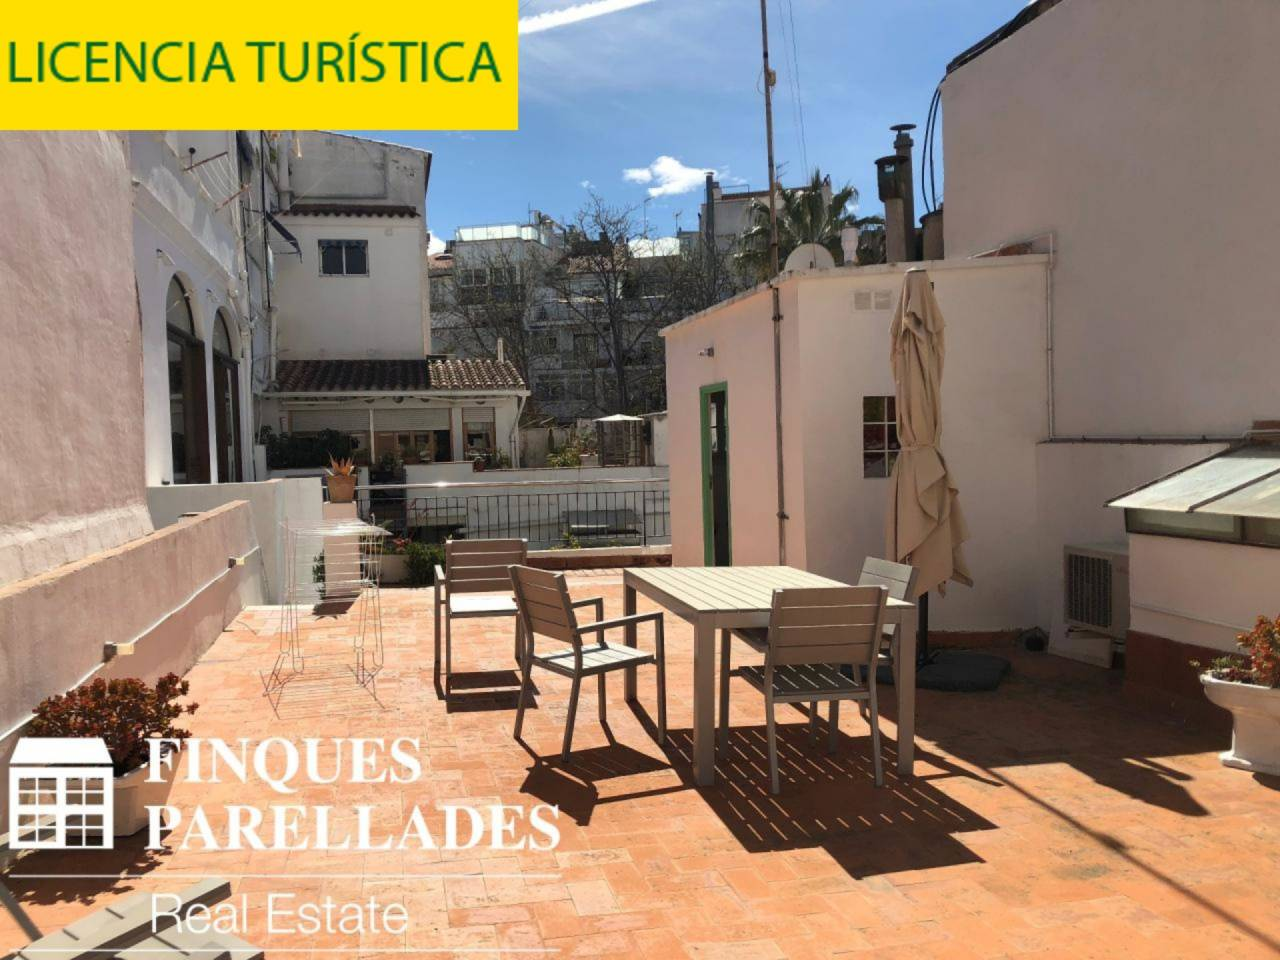 Beautiful house with lots of charm in the center of Sitges. It has a tourist license